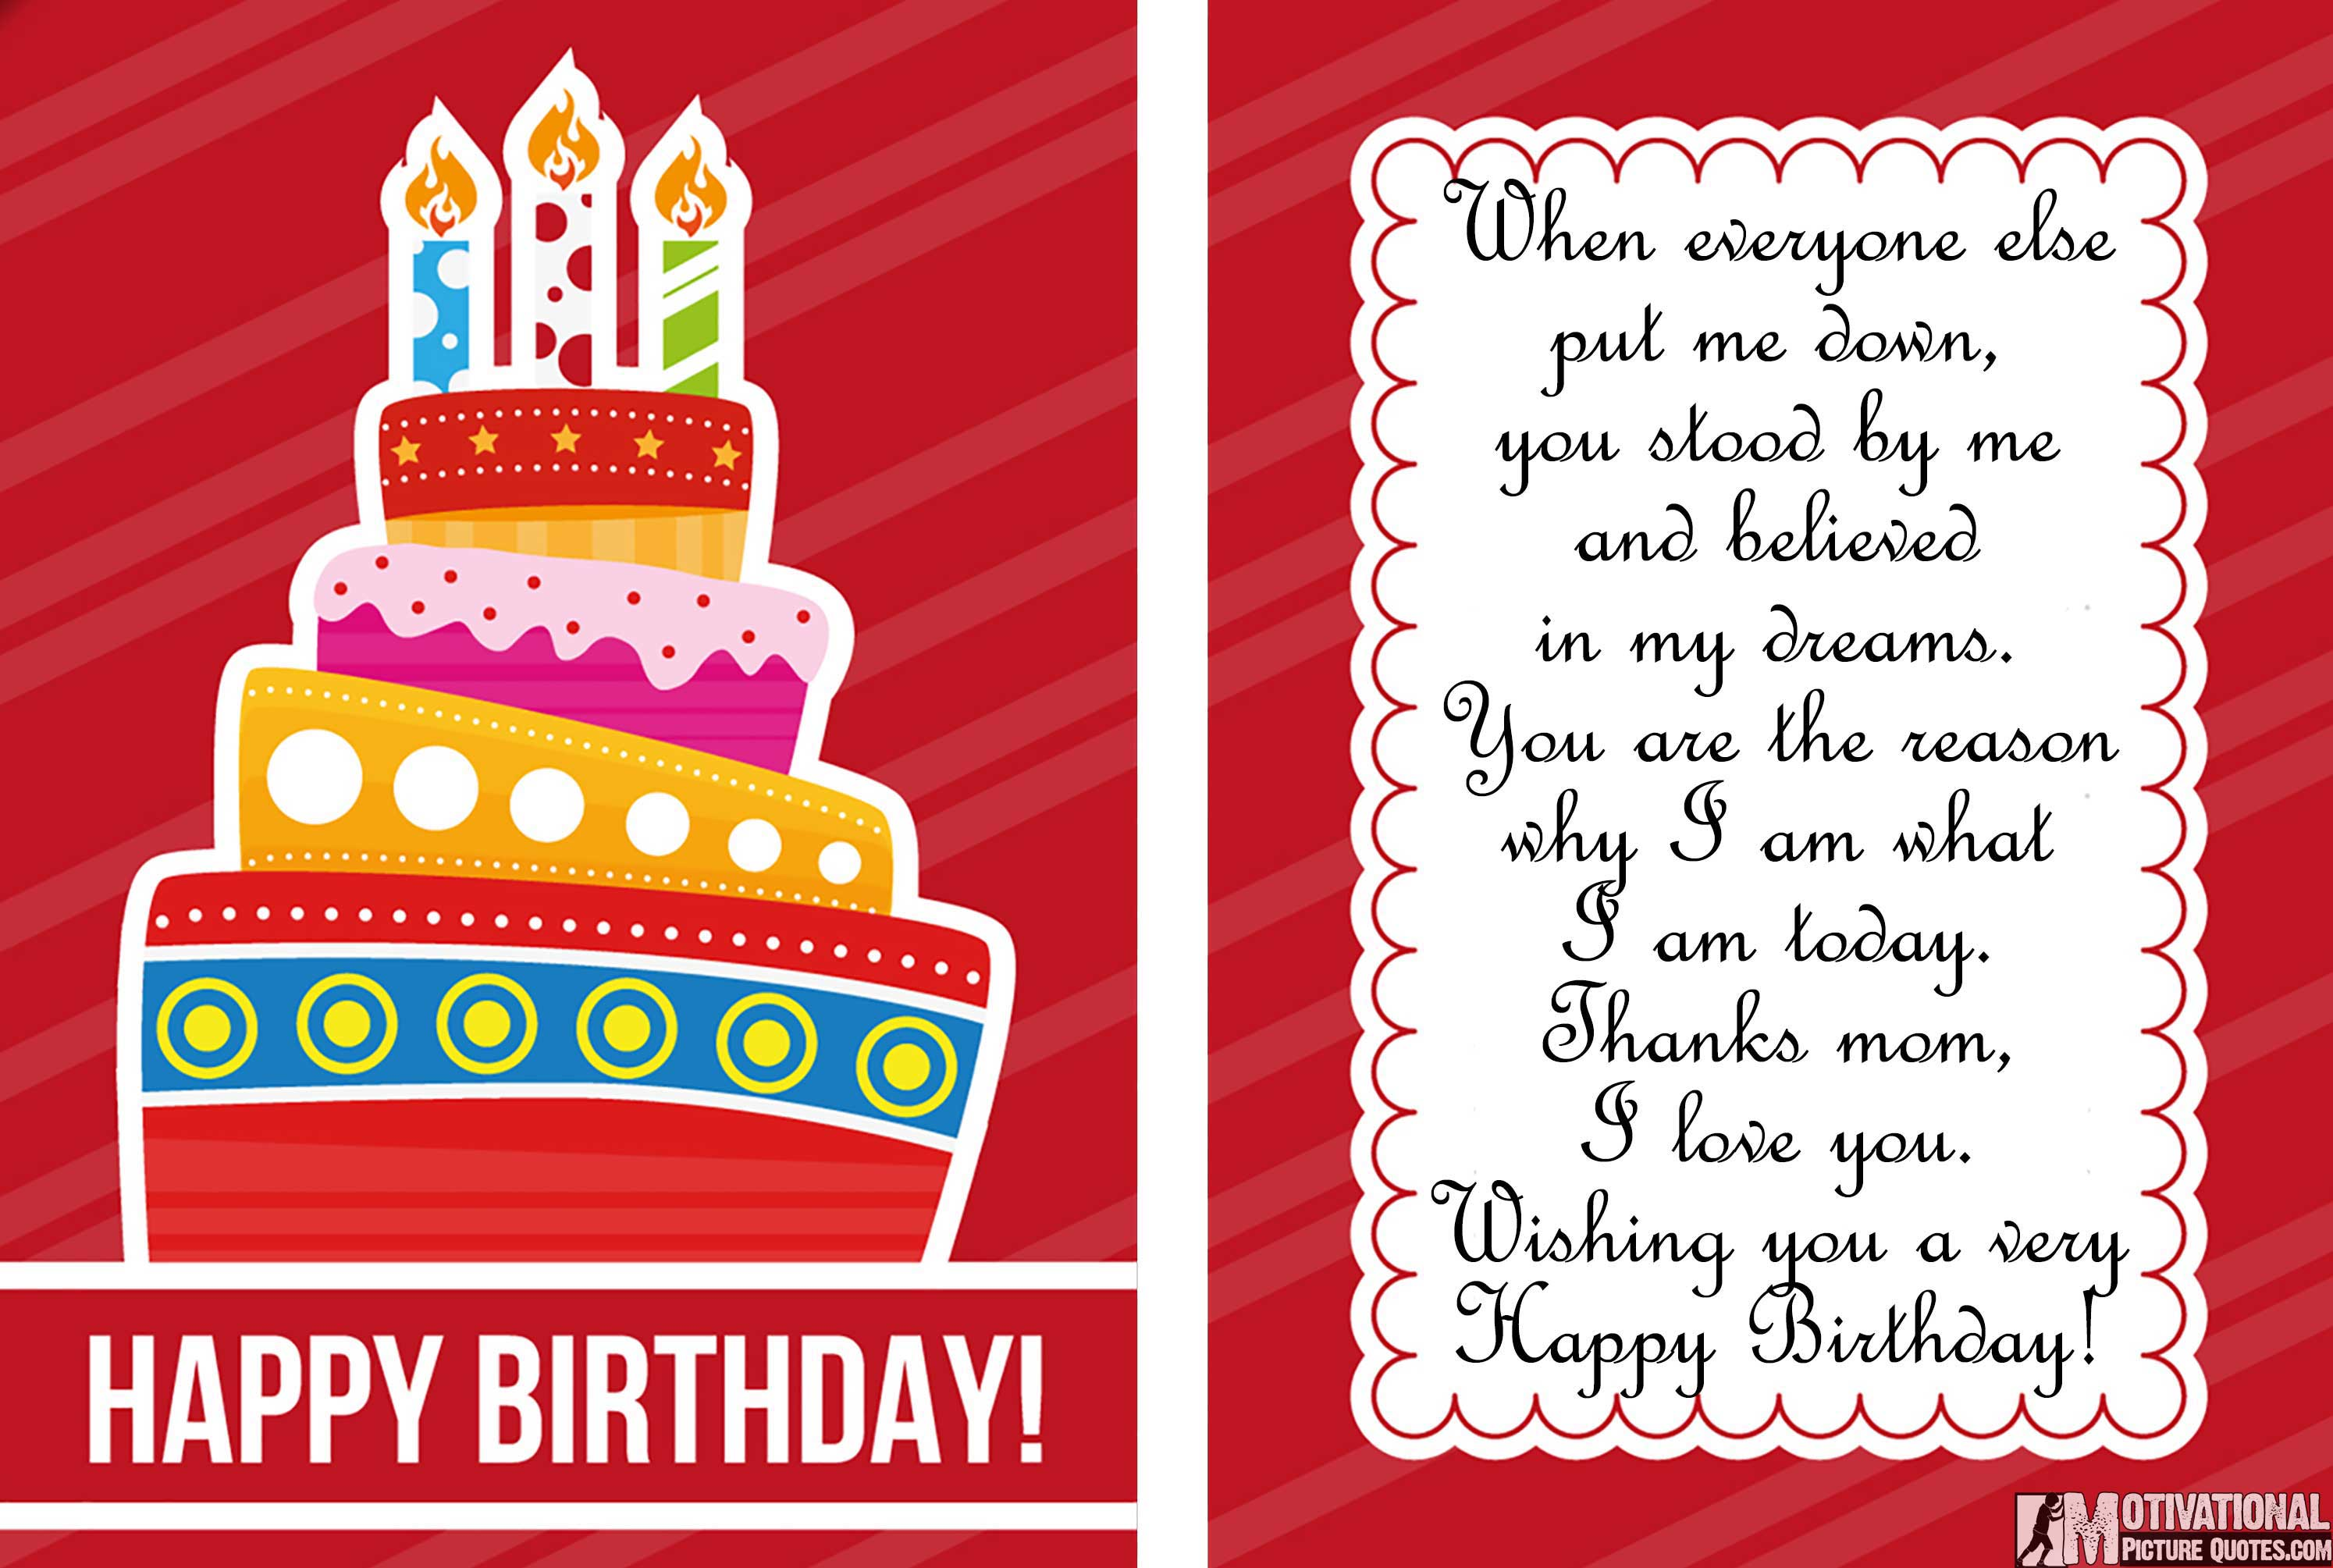 35 Inspirational Birthday Quotes Images Insbright